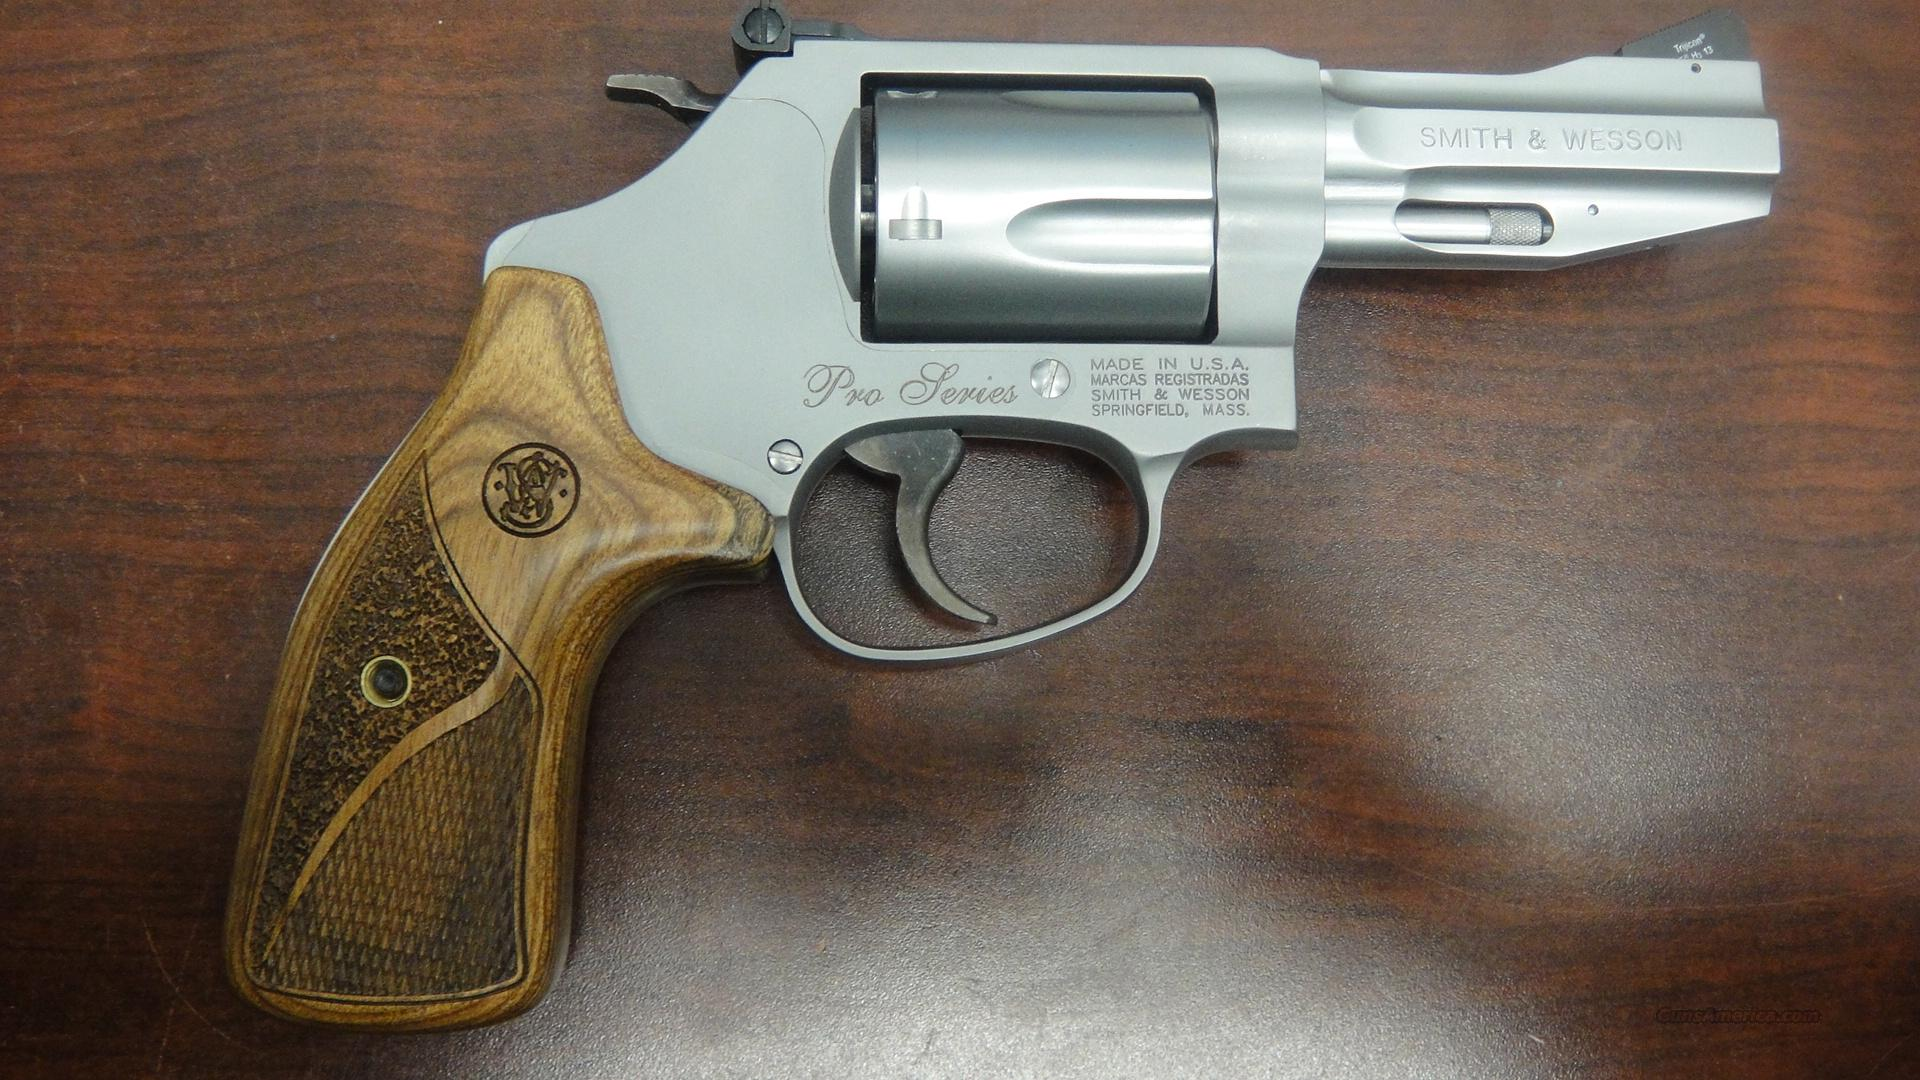 Smith And Wesson Model 60 15 Pro Series For Sale